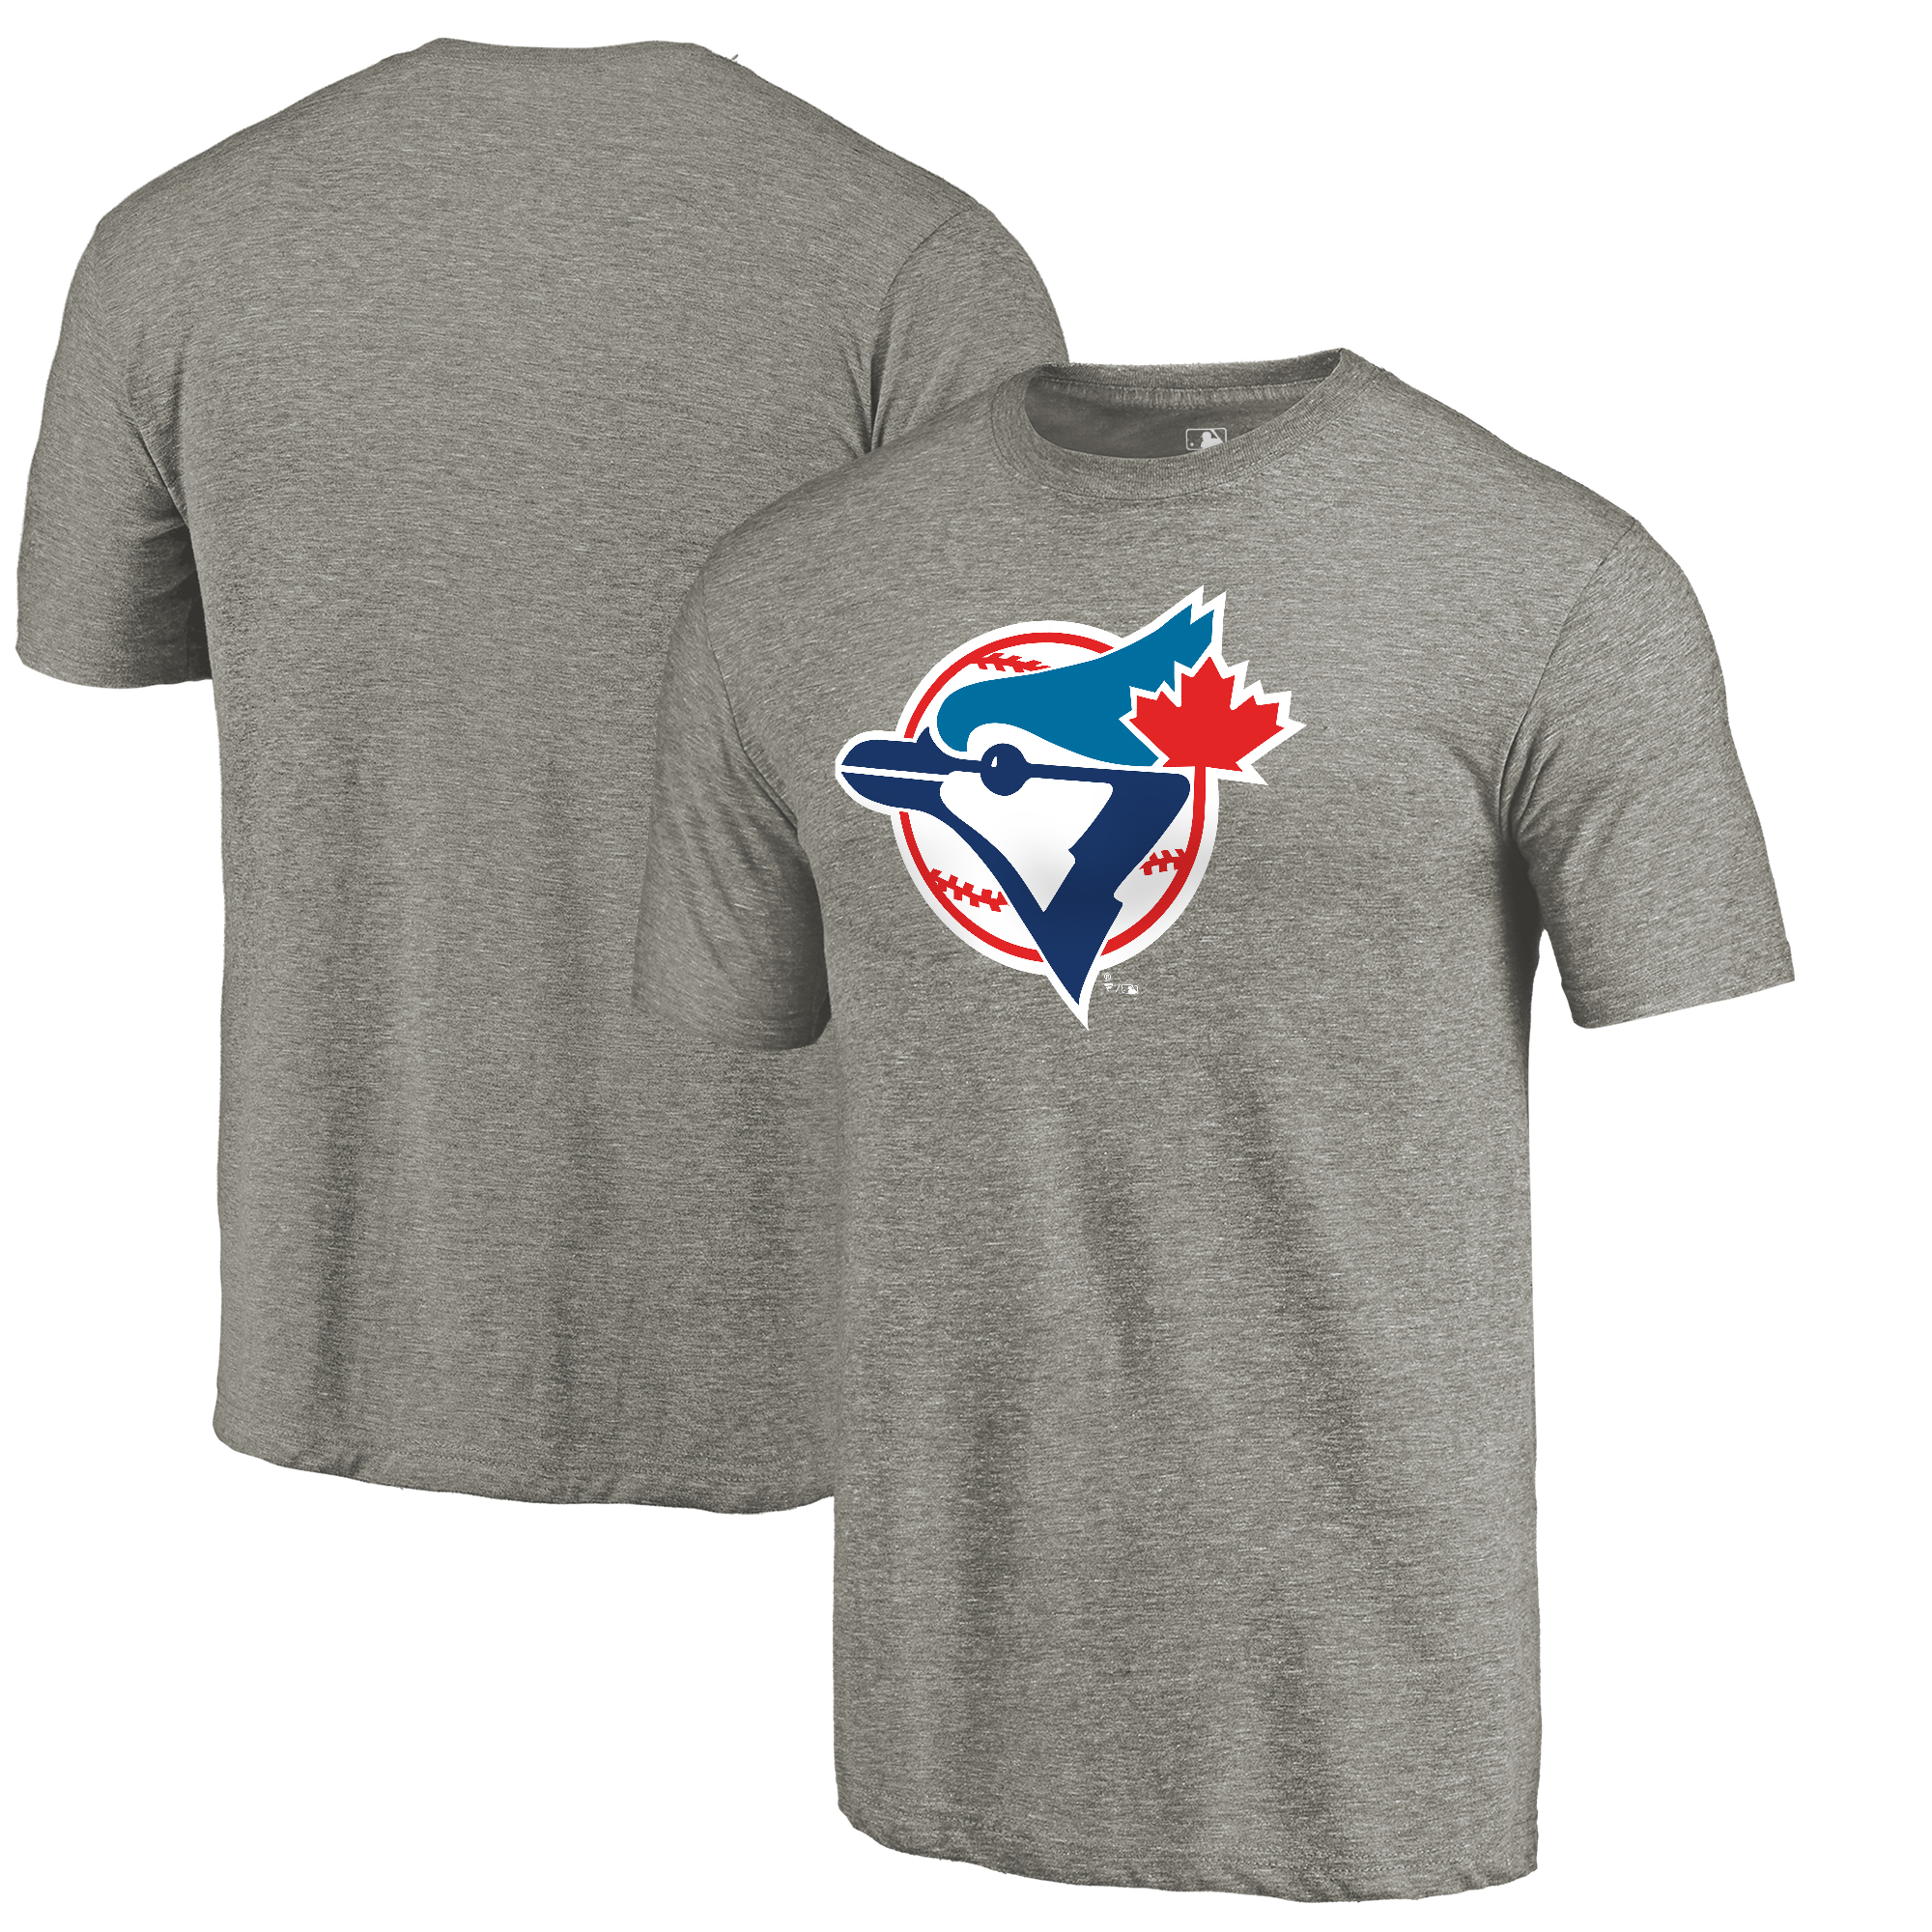 Toronto Blue Jays Fanatics Branded Cooperstown Collection Forbes Tri-Blend T-Shirt - Ash